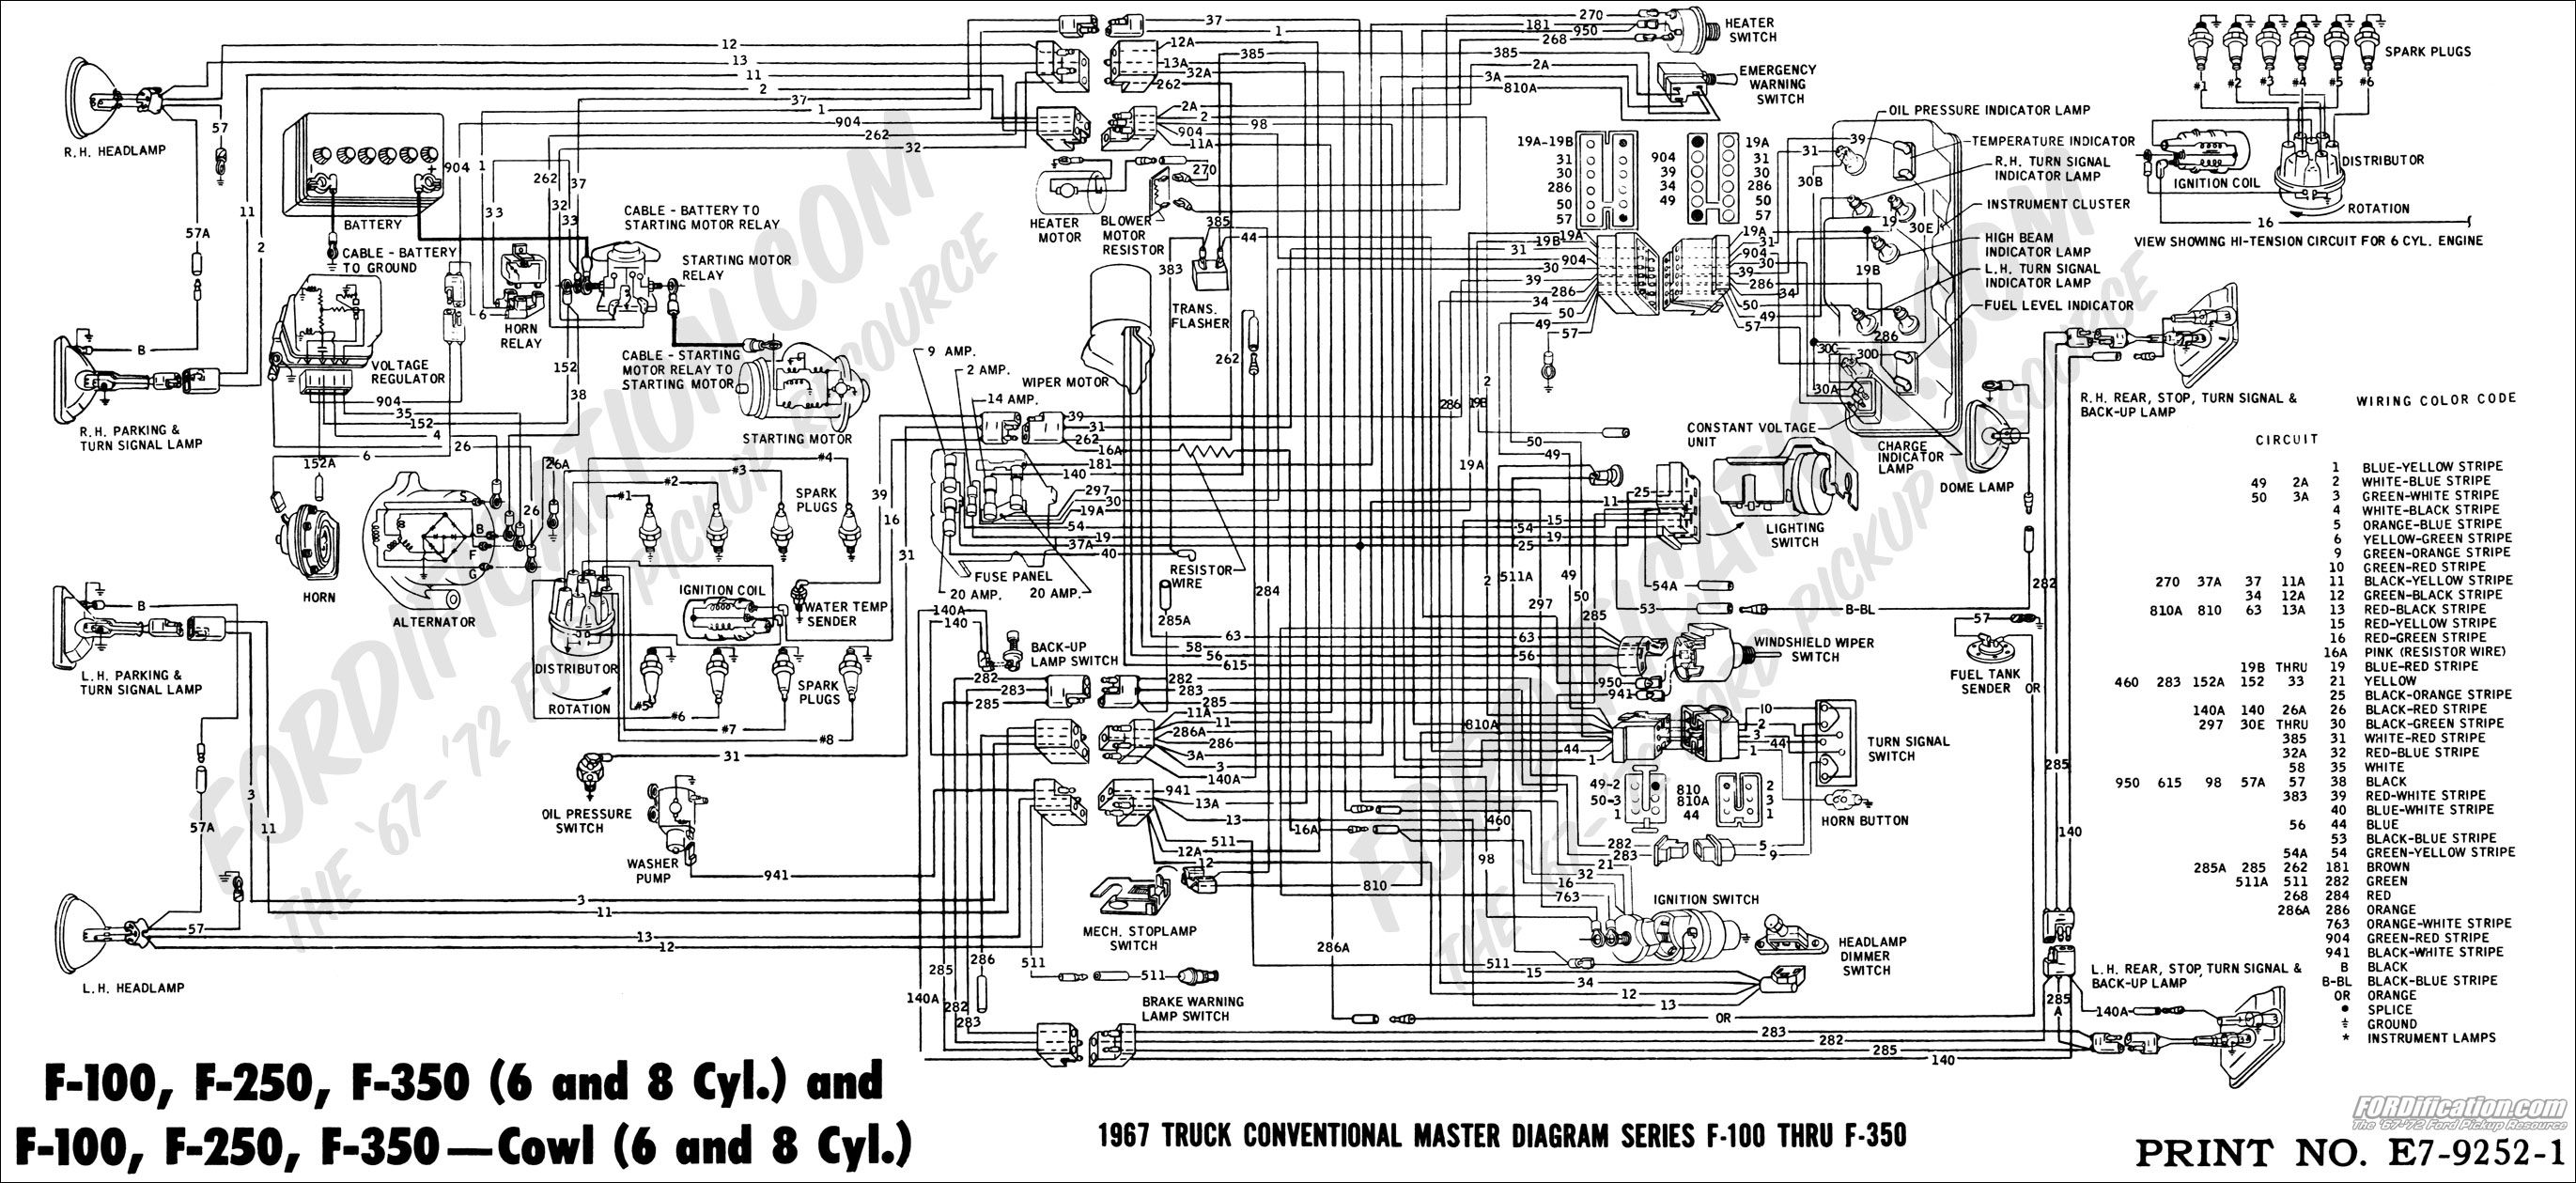 8e608320d8e6c71ff5bbdb2efdd7ada1 ford truck technical drawings and schematics section h wiring Basic Electrical Wiring Diagrams at bakdesigns.co